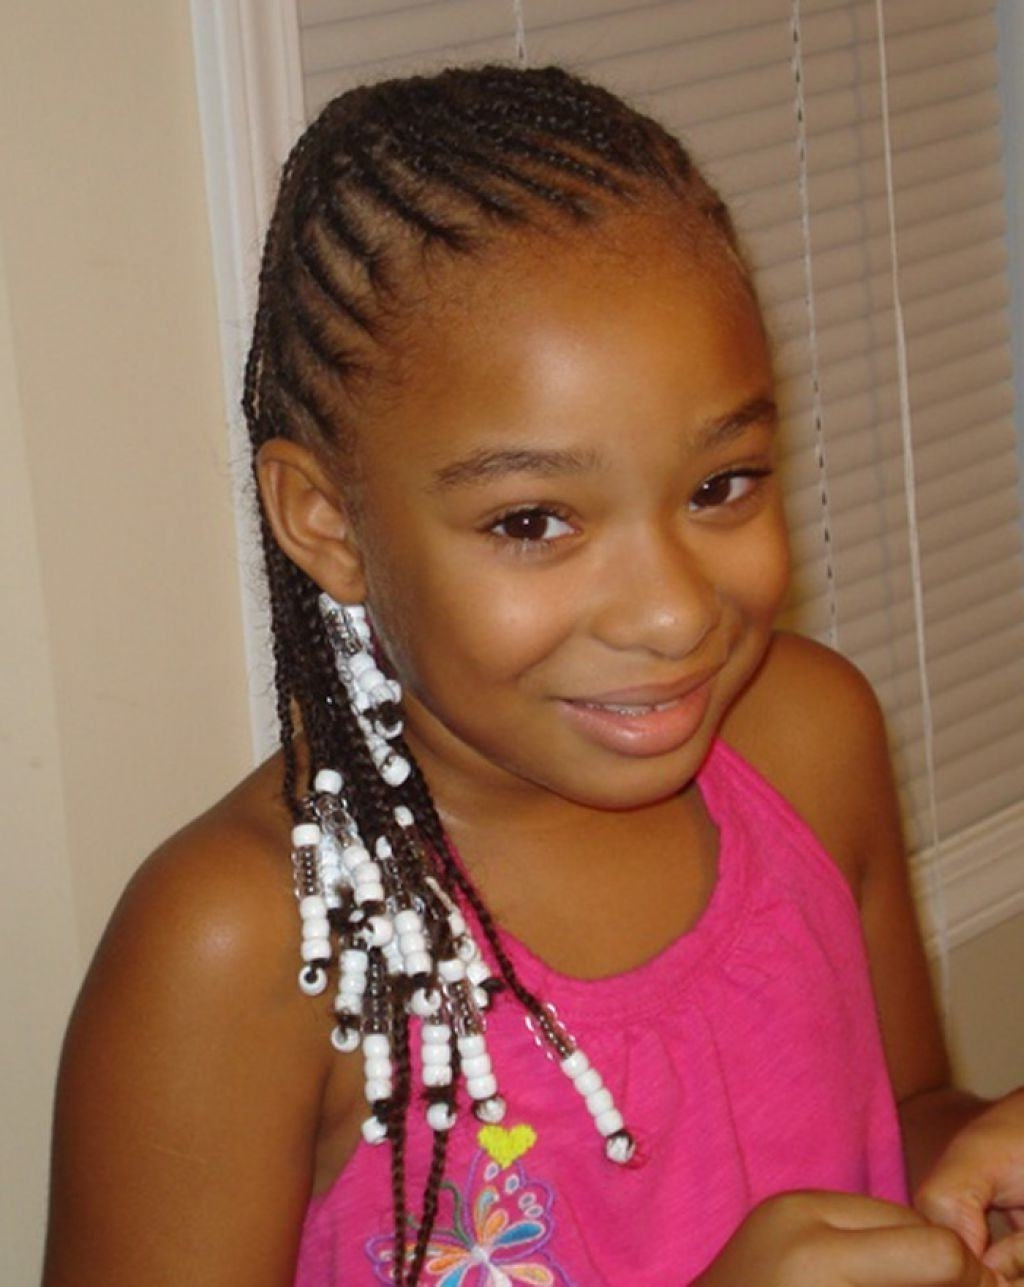 45+ Fun & Funky Braided Hairstyles For Kids – Hairstylecamp In Well Known Braided Hairstyles Without Weave (View 3 of 15)